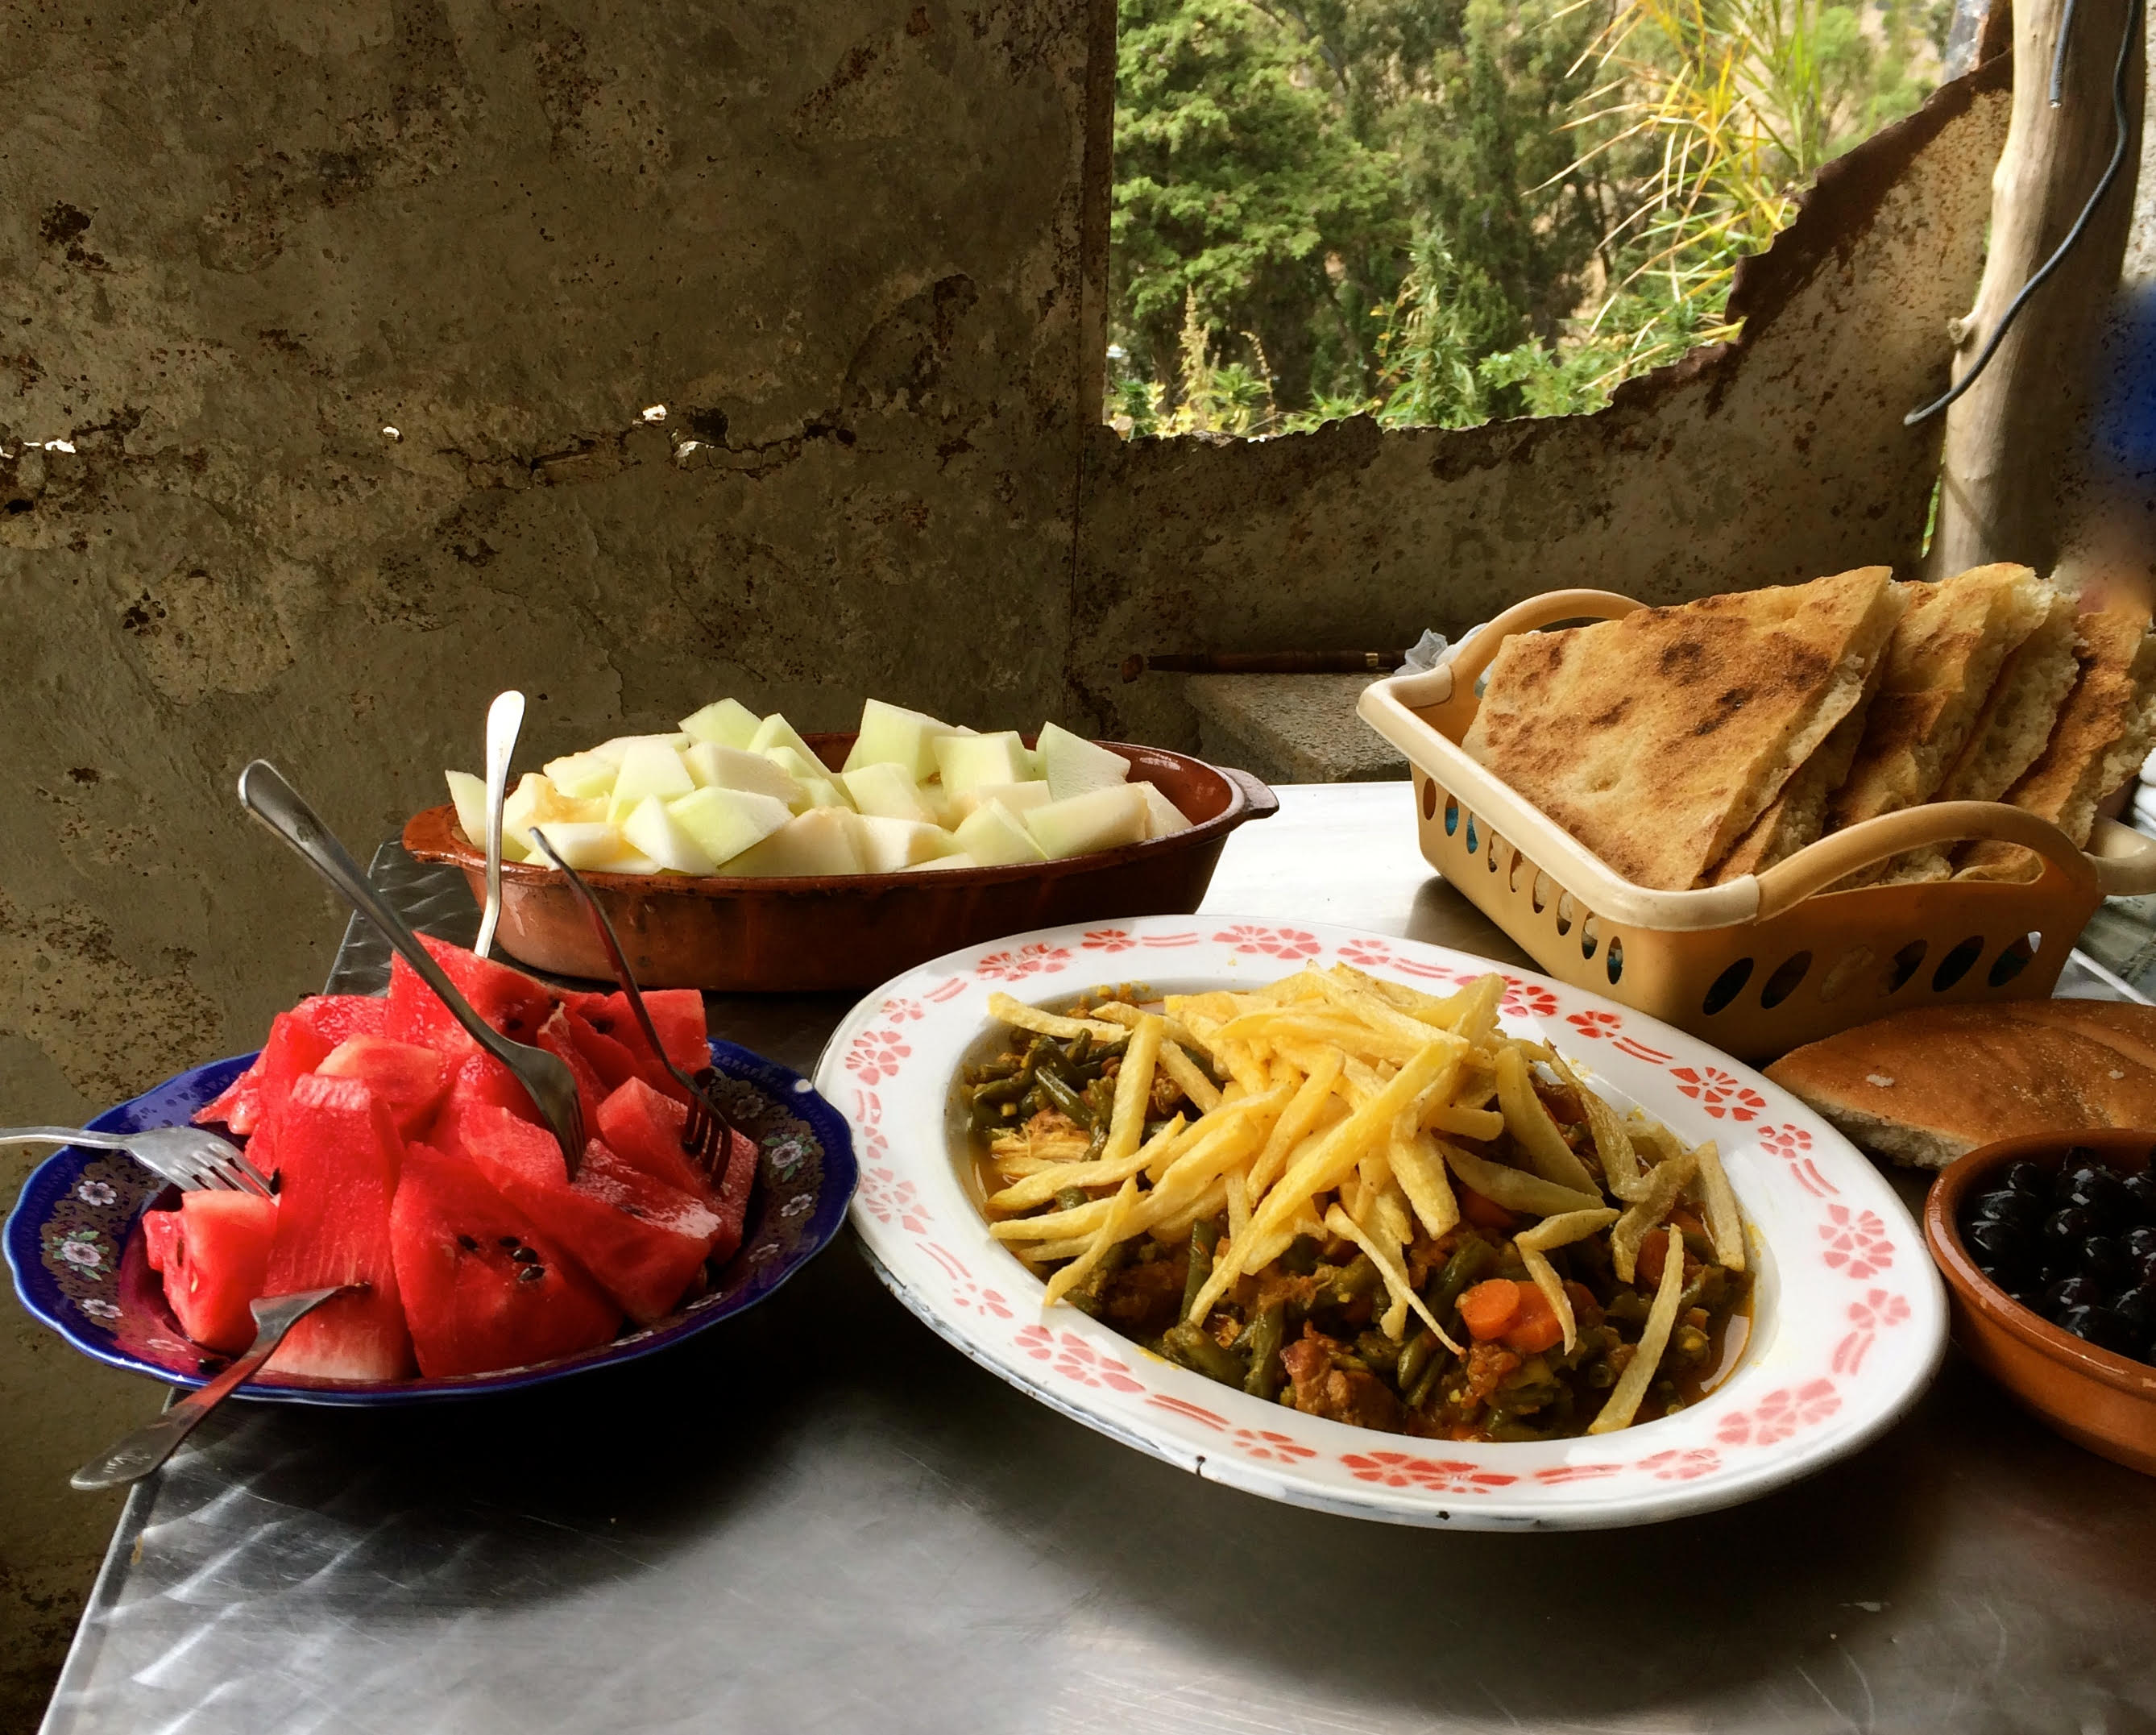 Moroccan meal. Our meal by Khadija